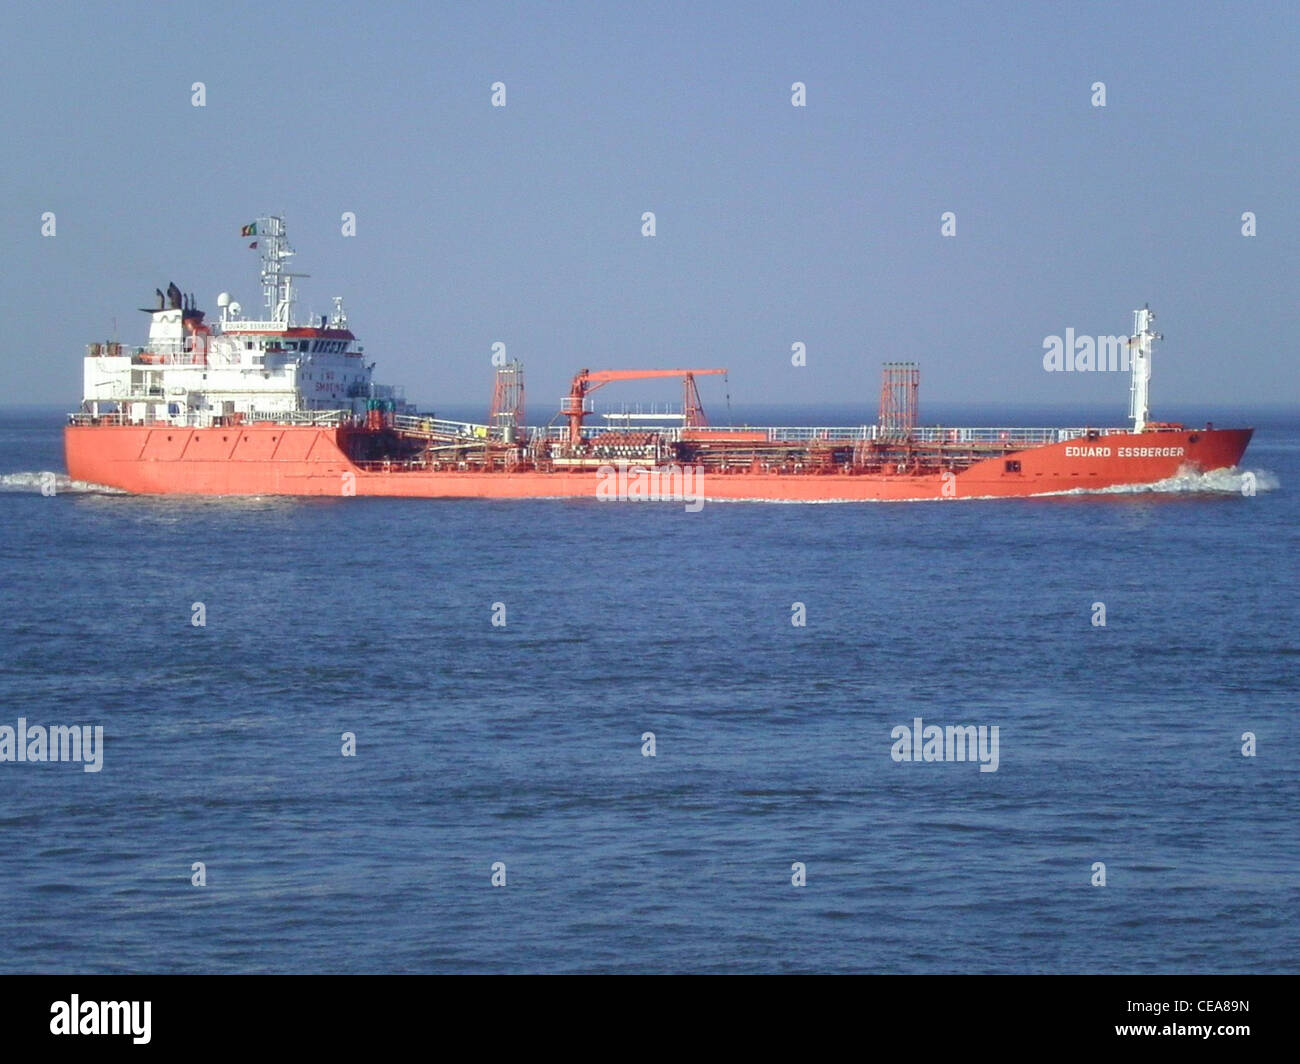 The chemical/oil tanker Eduard Essberger inbound on the River Elbe near Cuxhaven - Stock Image